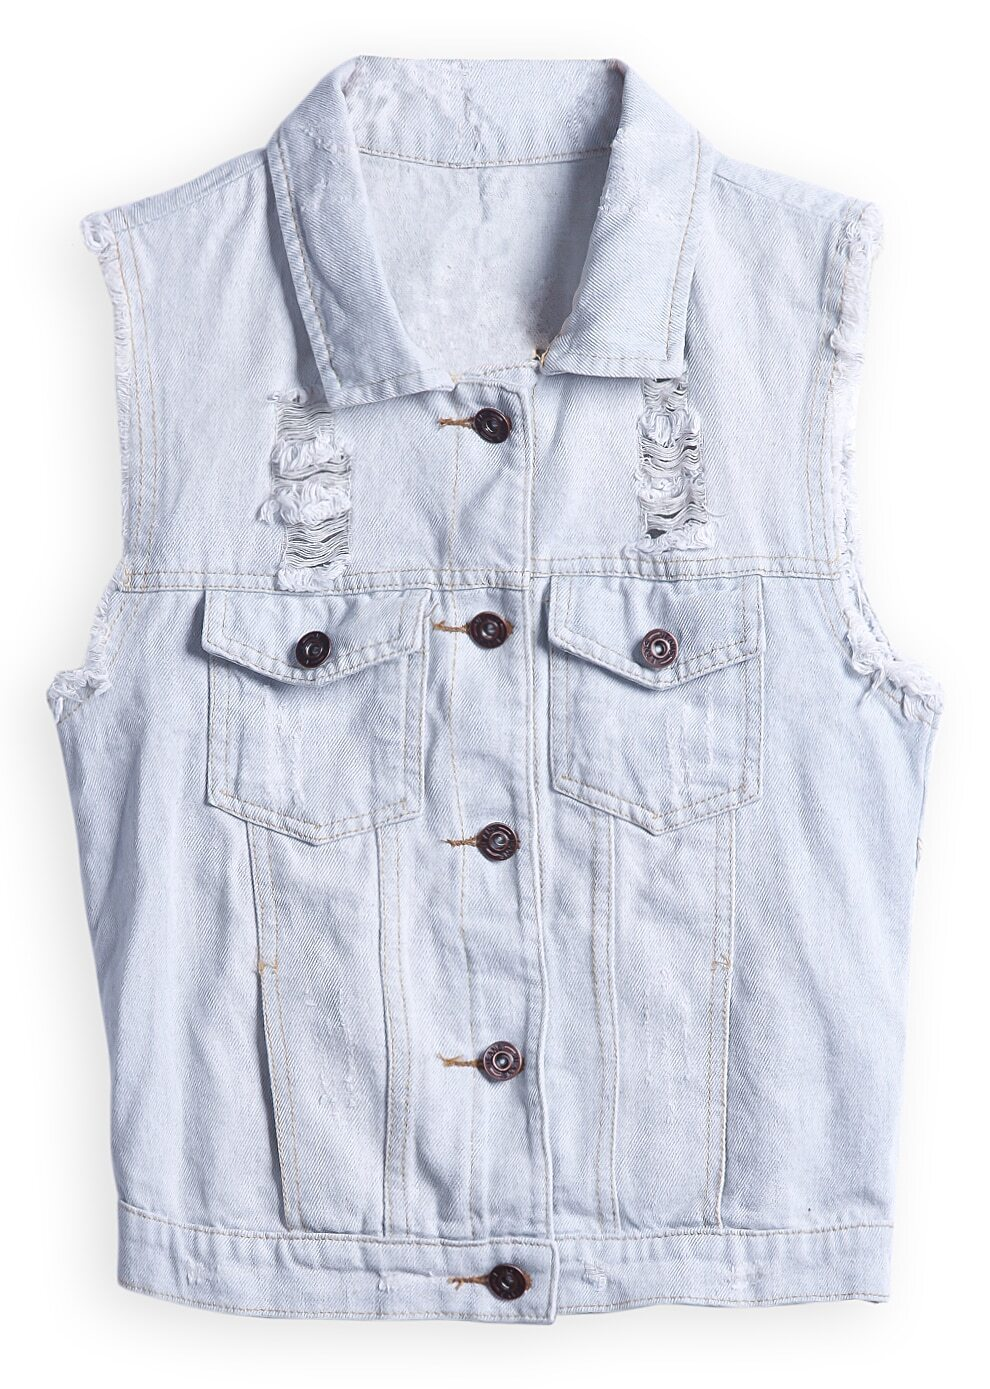 Light Blue Sleeveless Ripped Pockets Denim Jacket -SheIn(Sheinside)